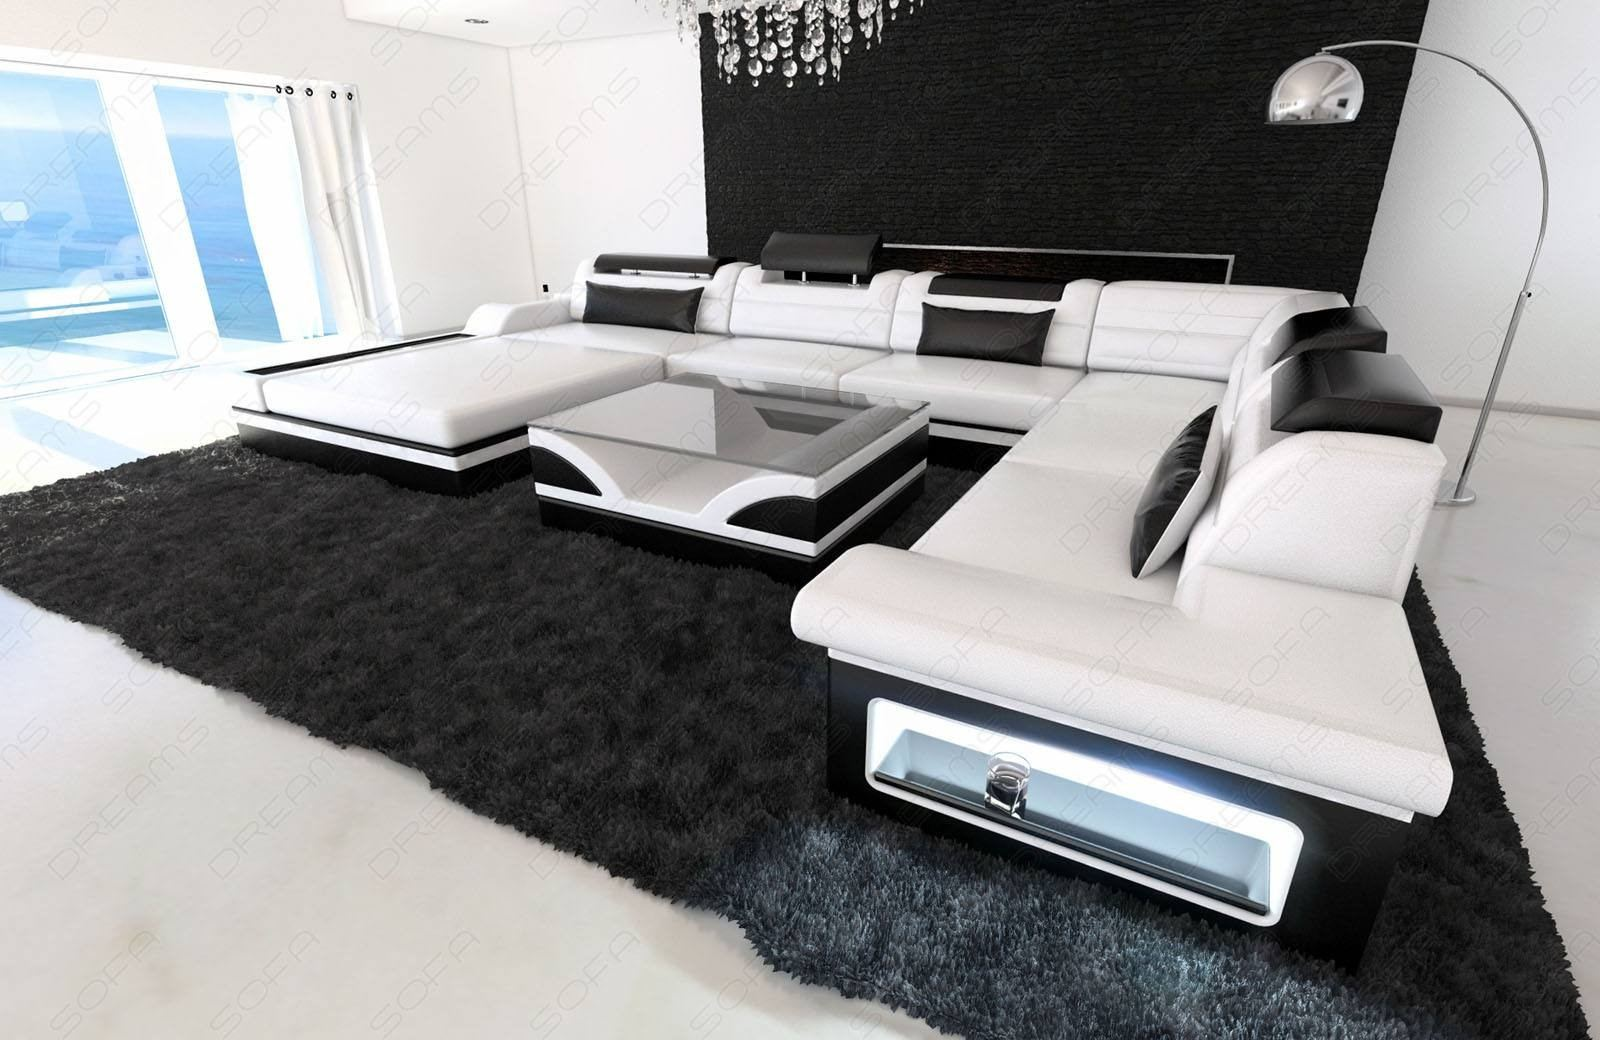 Surprising Design Sectional Sofa Orlando Xl With Led Lights Andrewgaddart Wooden Chair Designs For Living Room Andrewgaddartcom